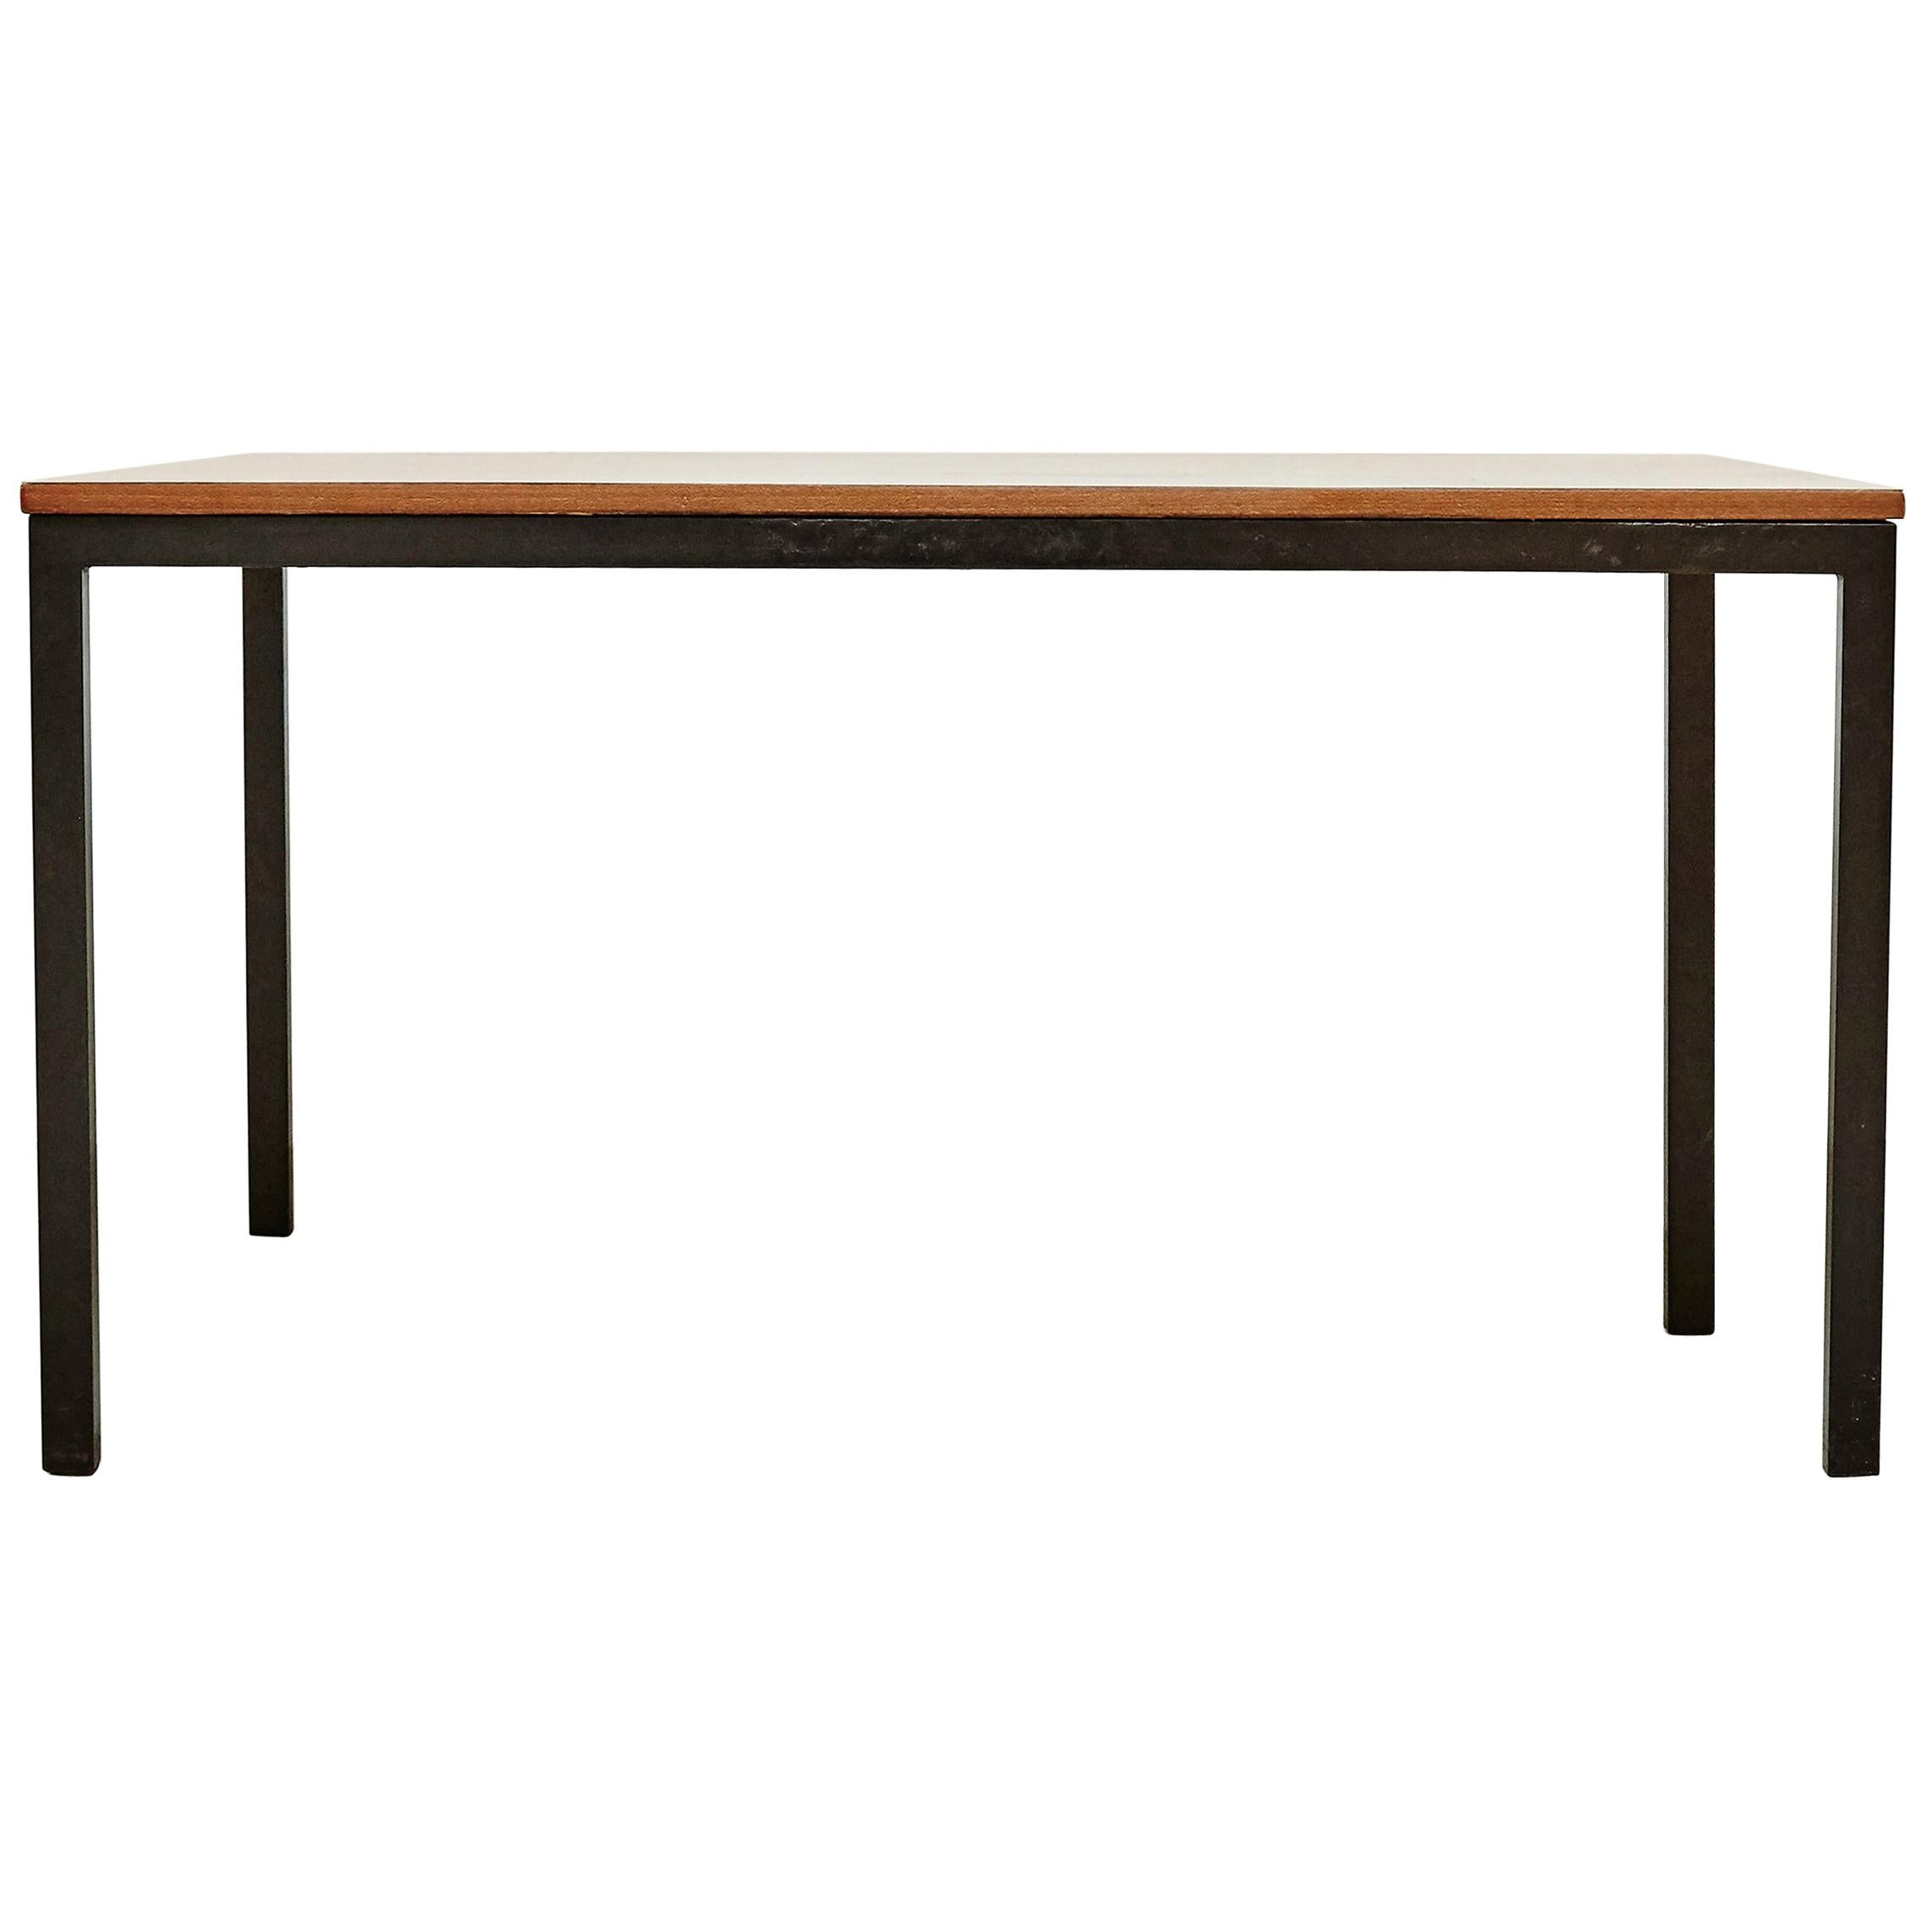 Charlotte Perriand Mid-Century Modern Formica Cansado Table, circa 1950